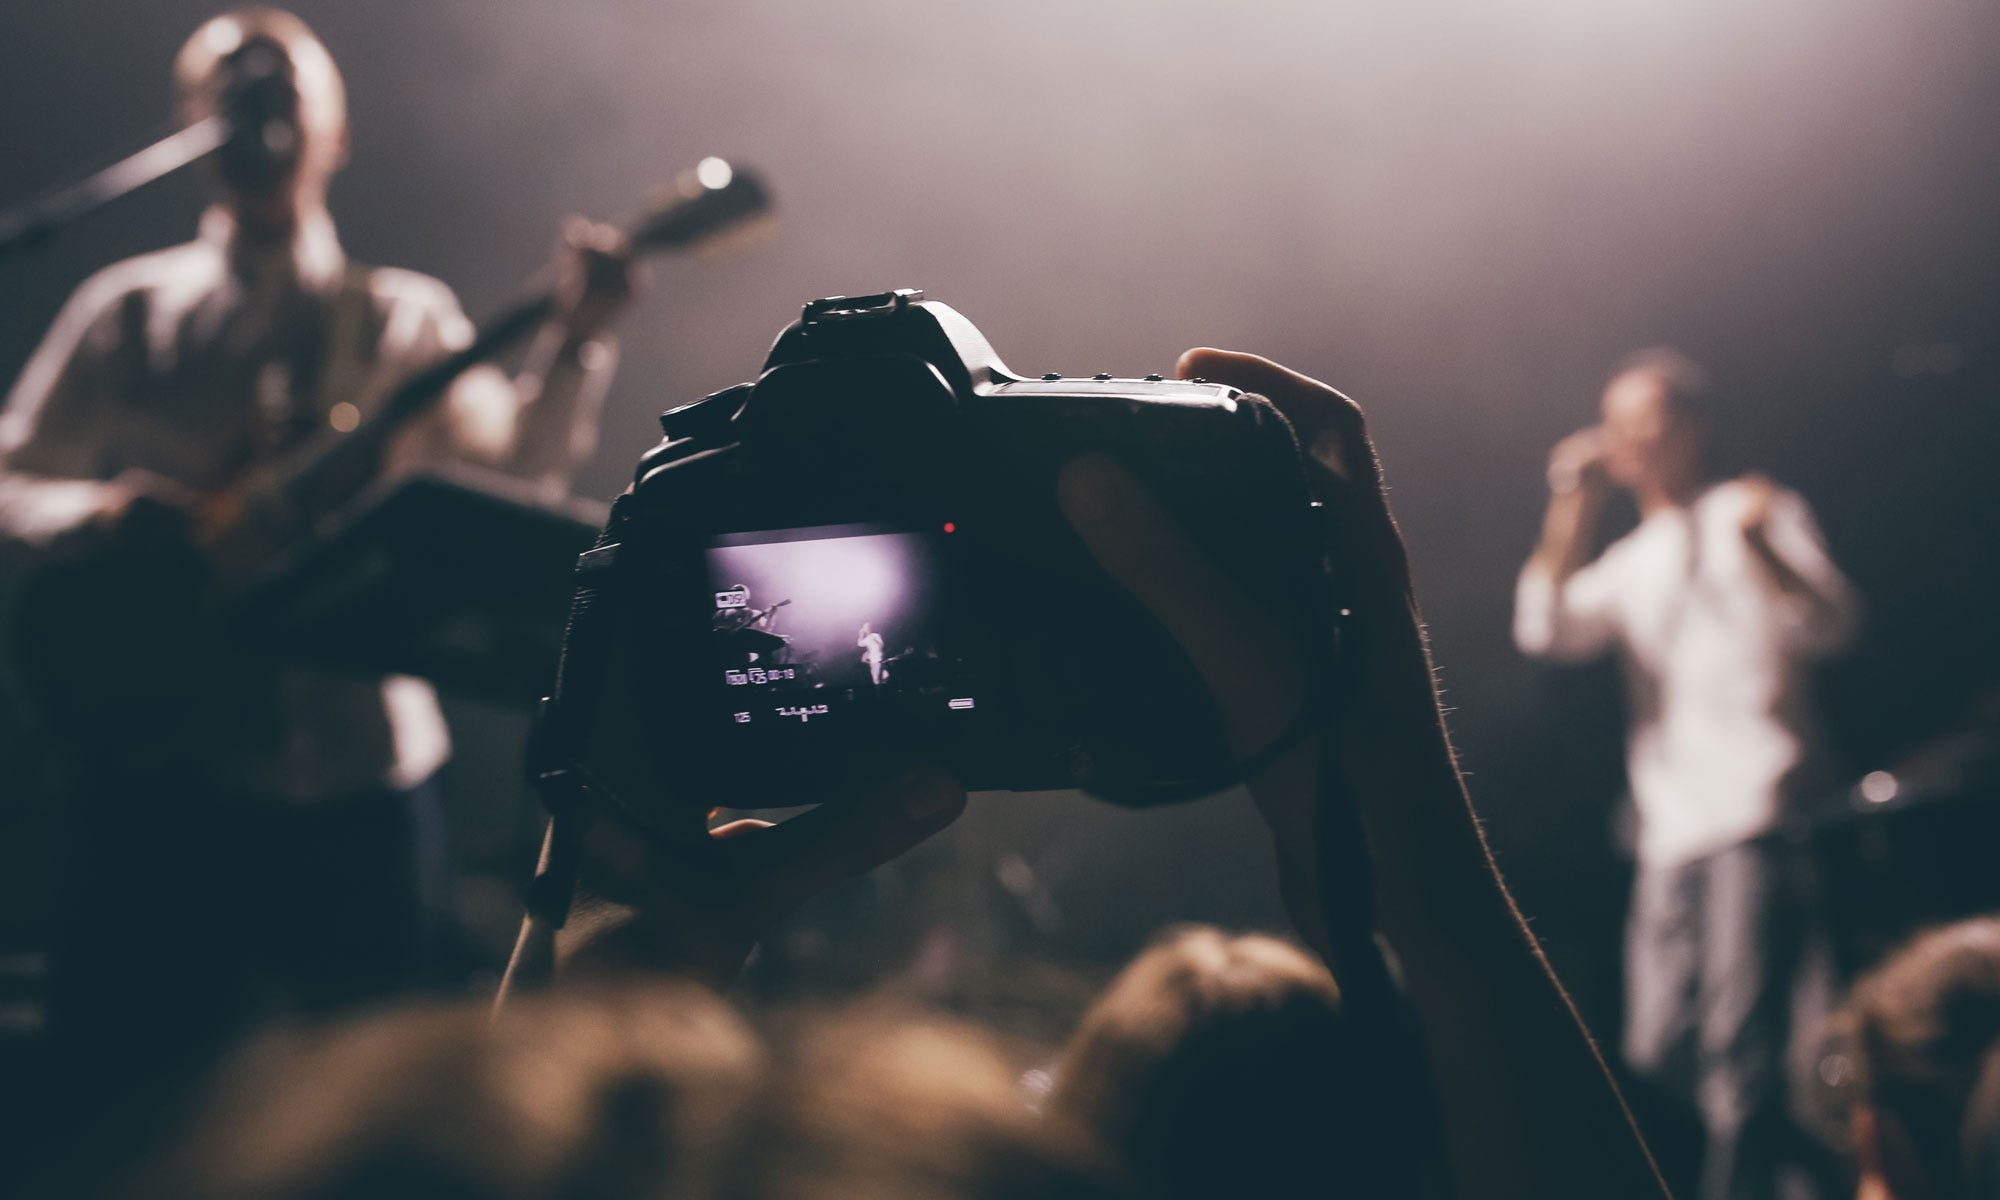 What Is the Best Lens for Concert Photography? - ALC